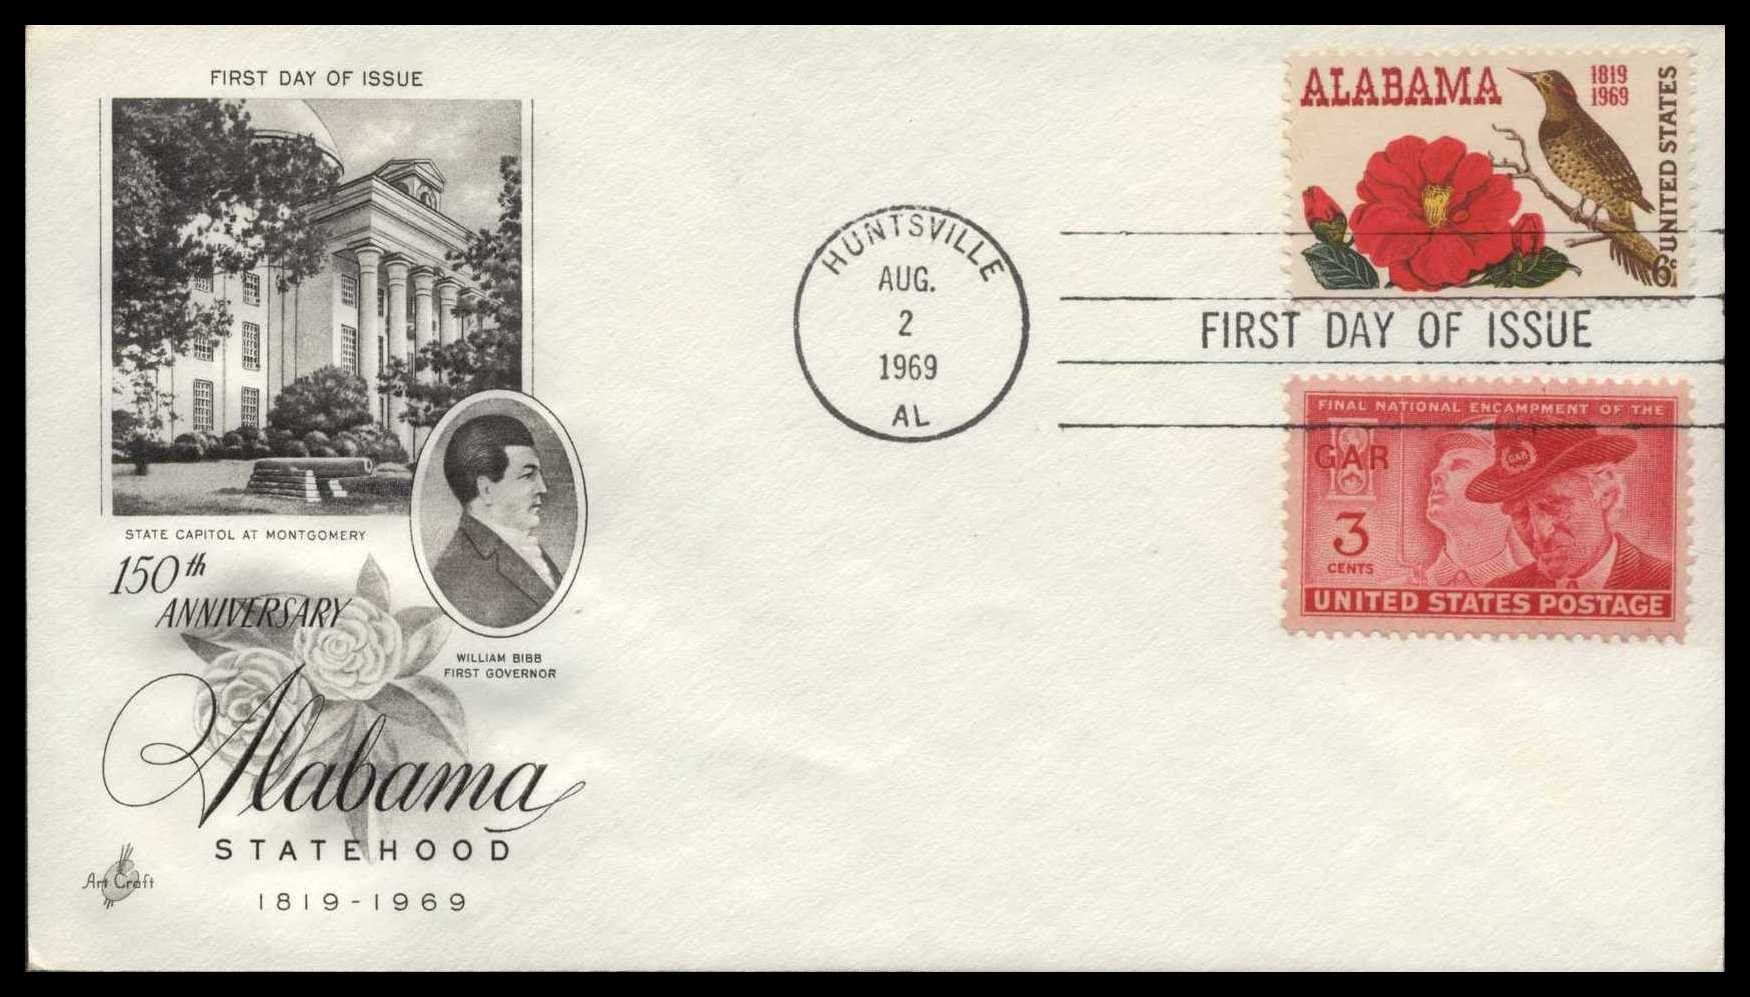 First Day Issue, Stamp, Postal History, Alabama Statehood